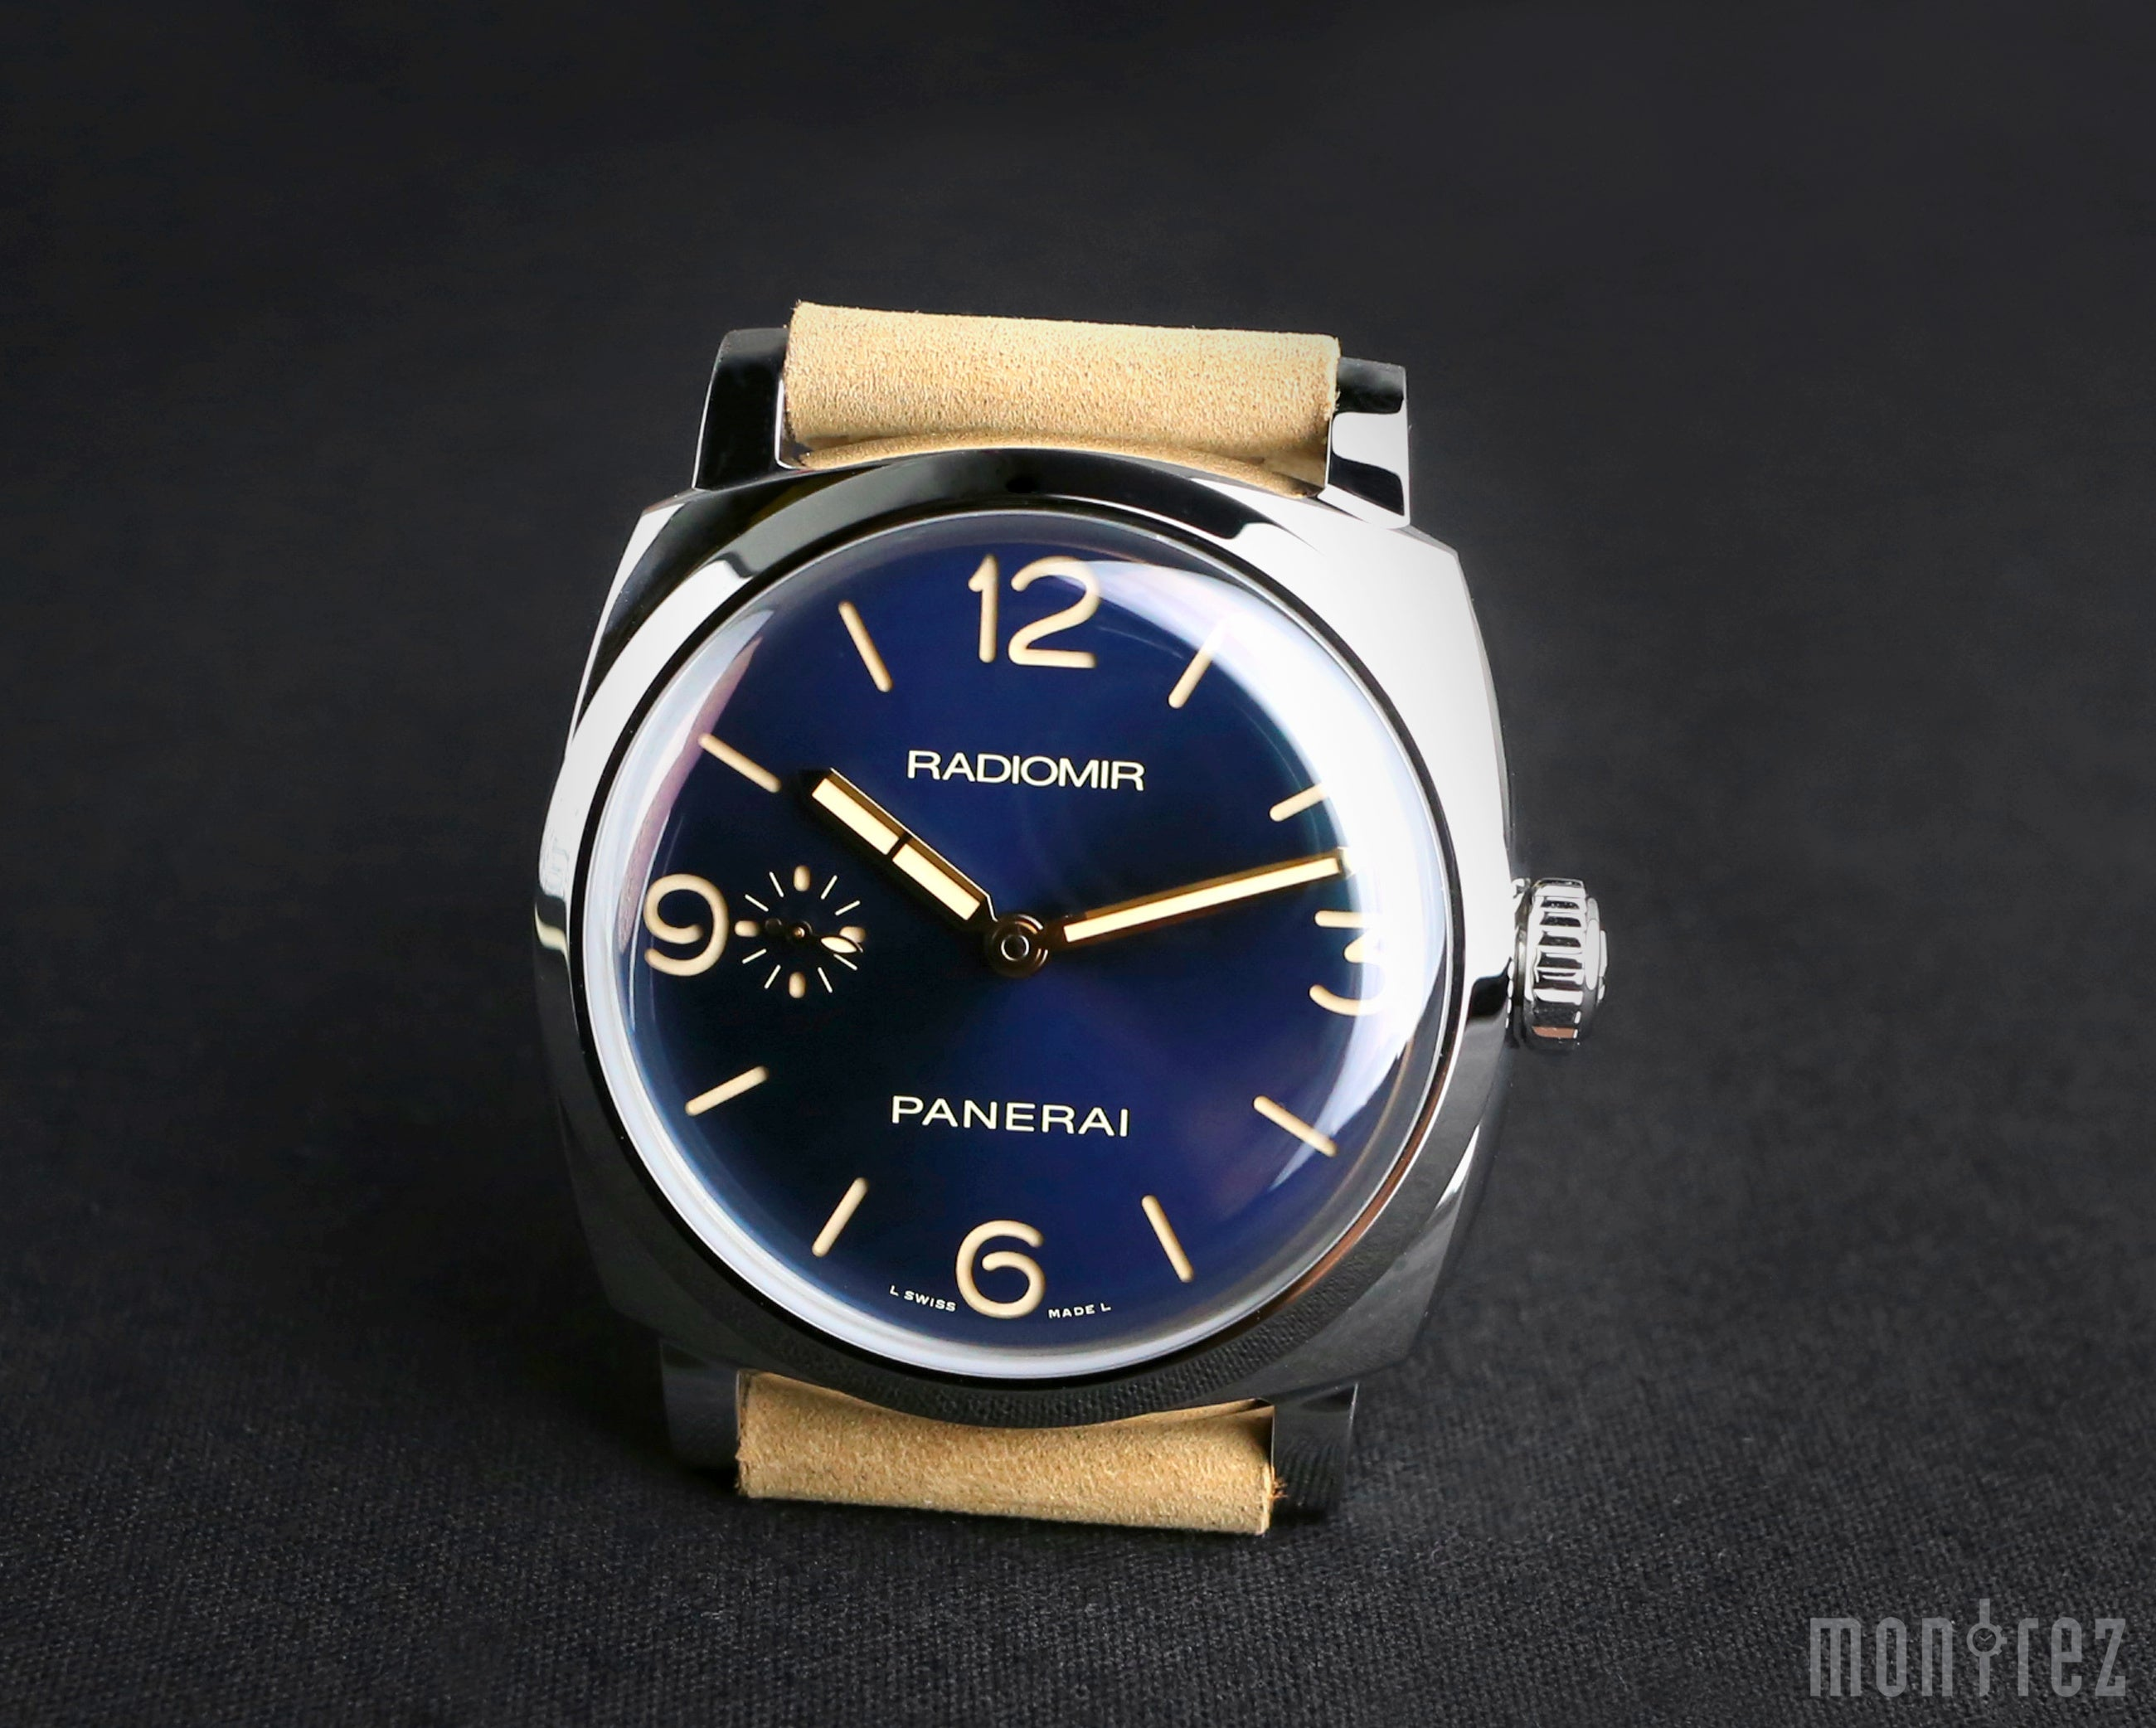 Panerai Radiomir 1940 3 Days Acciaio 47mm PAM00690 (2016 Limited Special Edition) (Out of Production)